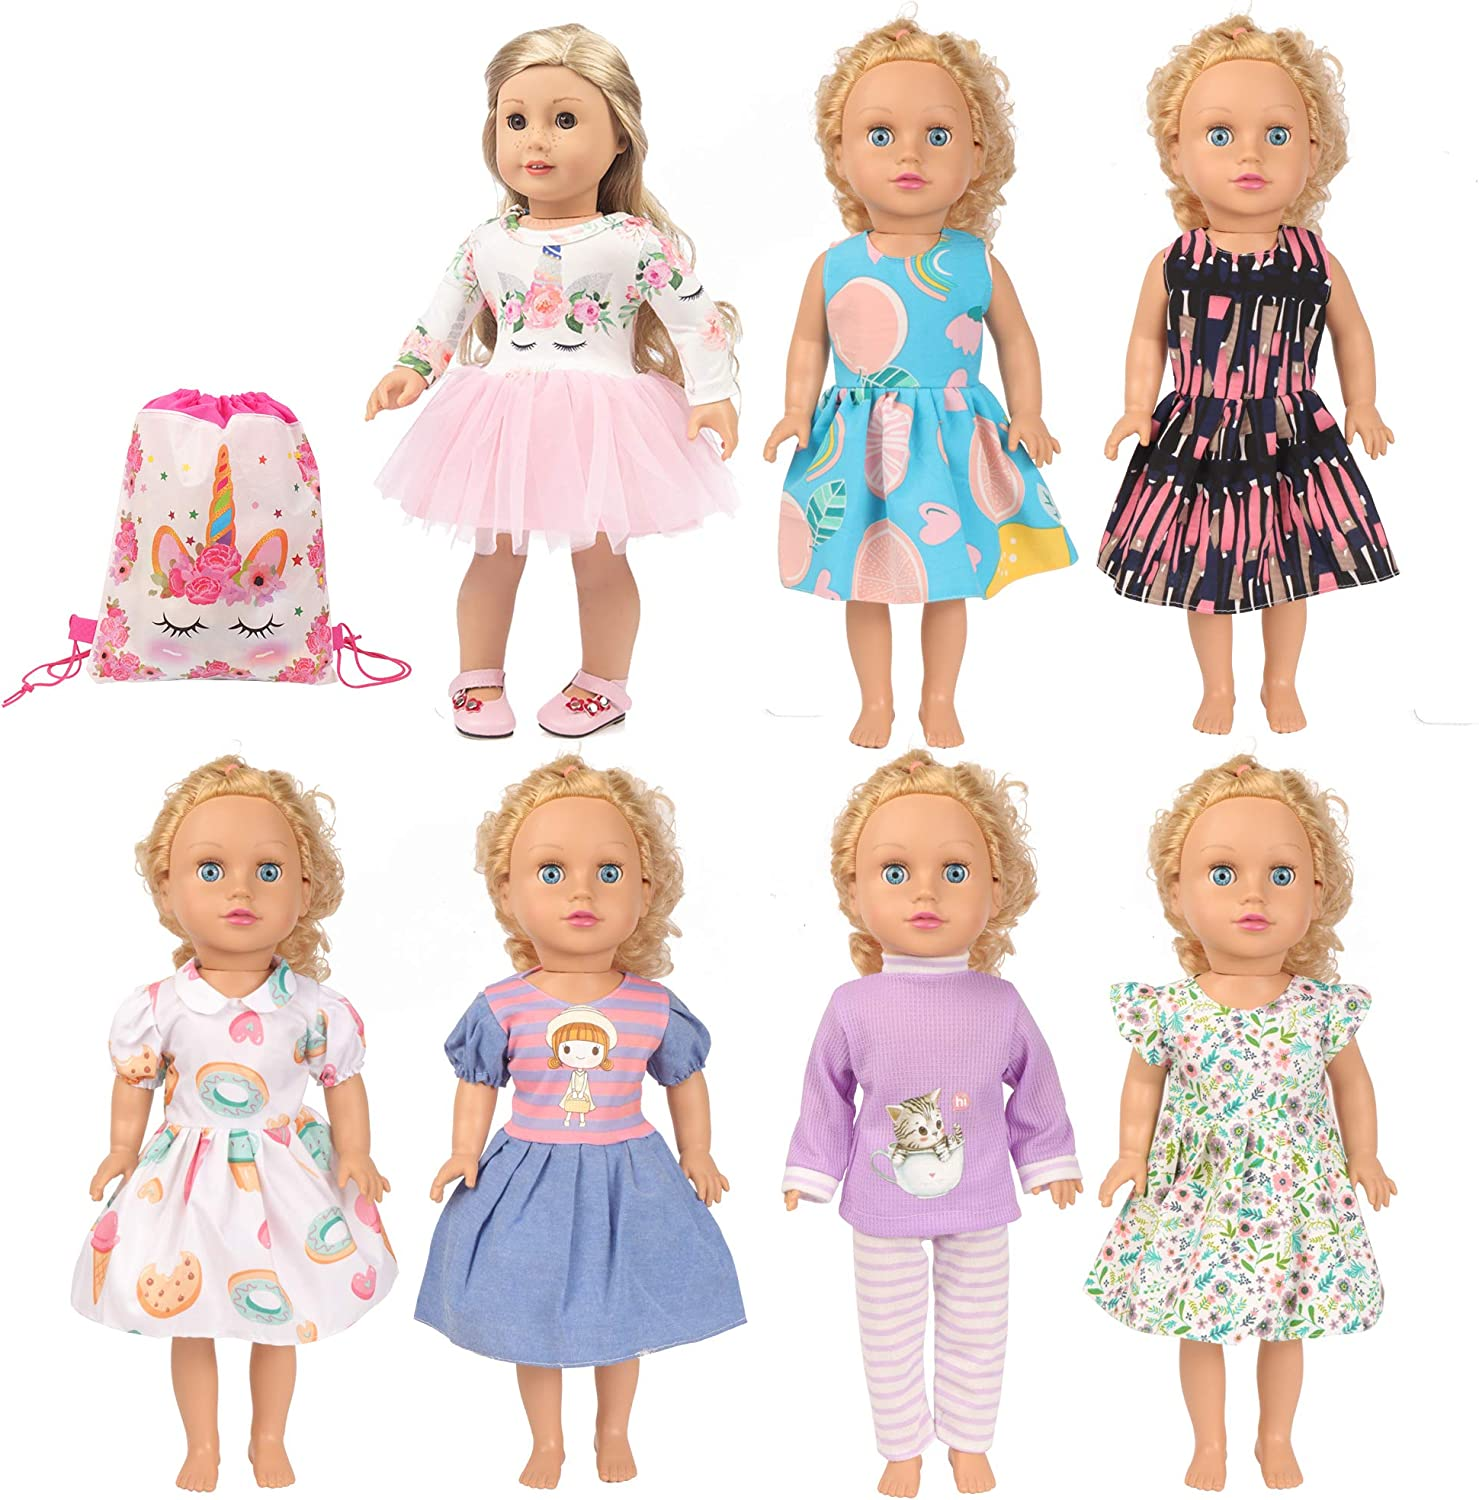 SOTOGO 7 Sets 18 Inch Doll Clothes Doll Outfits Doll Accessories with Storage Bag, Doll Clothes for American 18 Inch Girl Doll